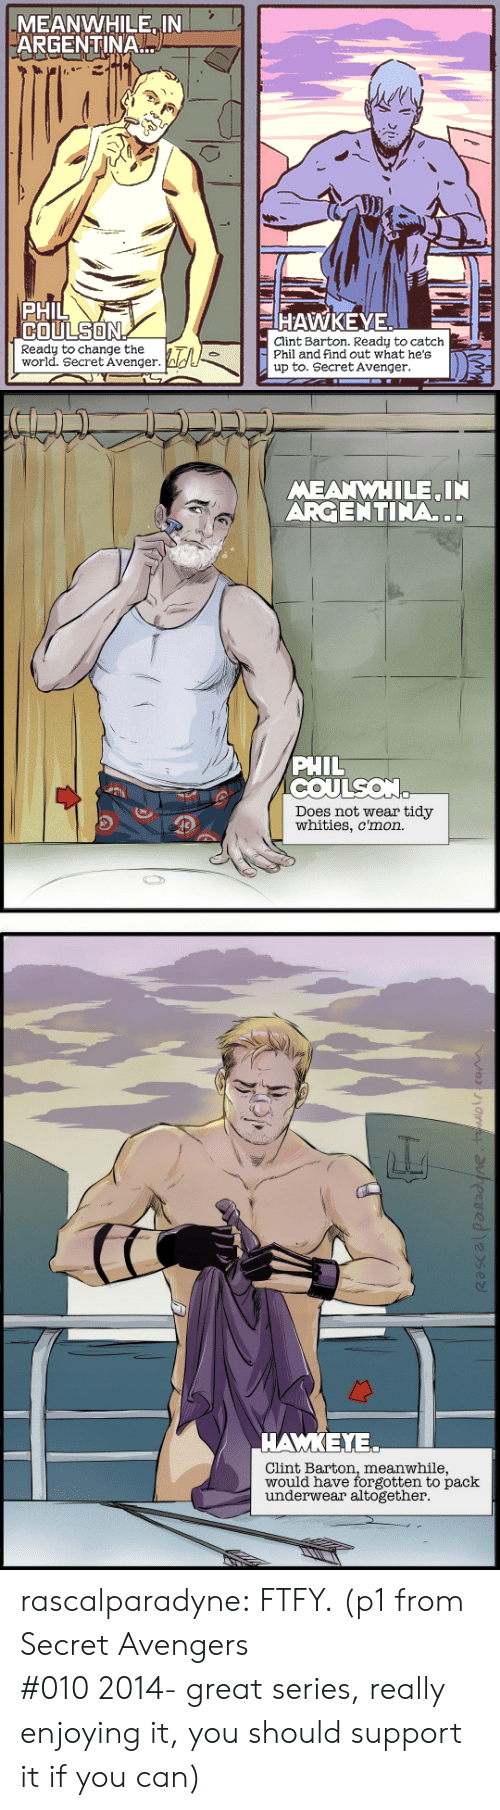 Argentina: MEANWHILE IN  ARGENTINA  PHIL  COULSON  HAWKEYE  Clint Barton. Ready to catch  Phil and find out what he's  up to. Secret Avenger  Ready to change the  world. Secret Avenger.   MEANWHILE IN  ARGENTINA..  PHIL  COULSON  Does not wear tidy  whities, c'mon.   ΑΜΚΕΥ.  Clint Barton, meanwhile,  would have forgotten to pack  underwear altogether rascalparadyne: FTFY. (p1 from Secret Avengers #0102014-great series, really enjoying it, you should support it if you can)